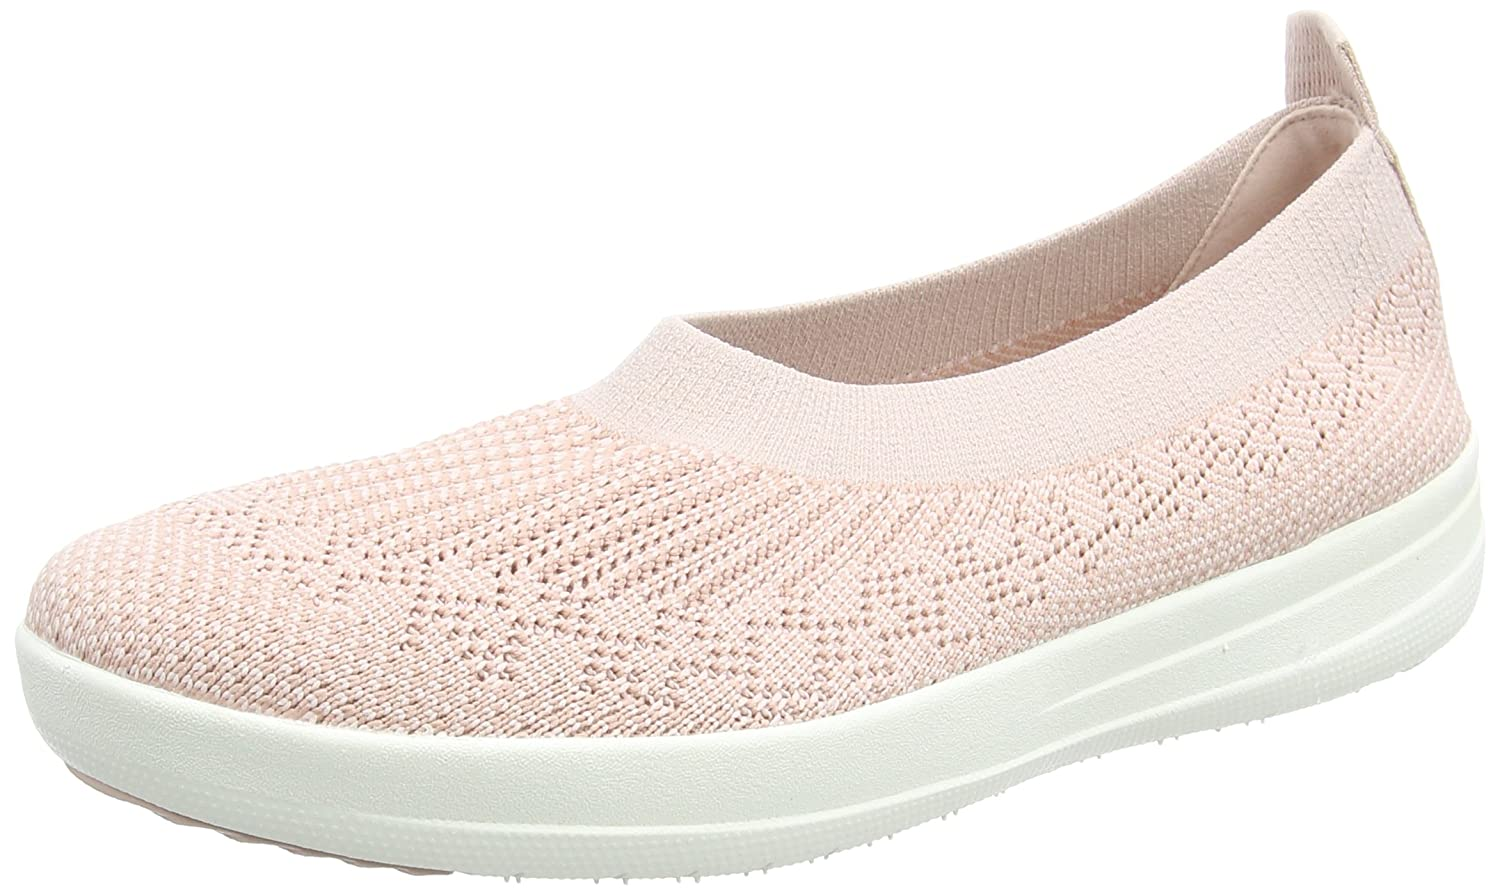 Fitflop H95 Women's Uberknit? Slip-On Ballerinas B01LXOSQRL 10 B(M) US|Neon Blush/White